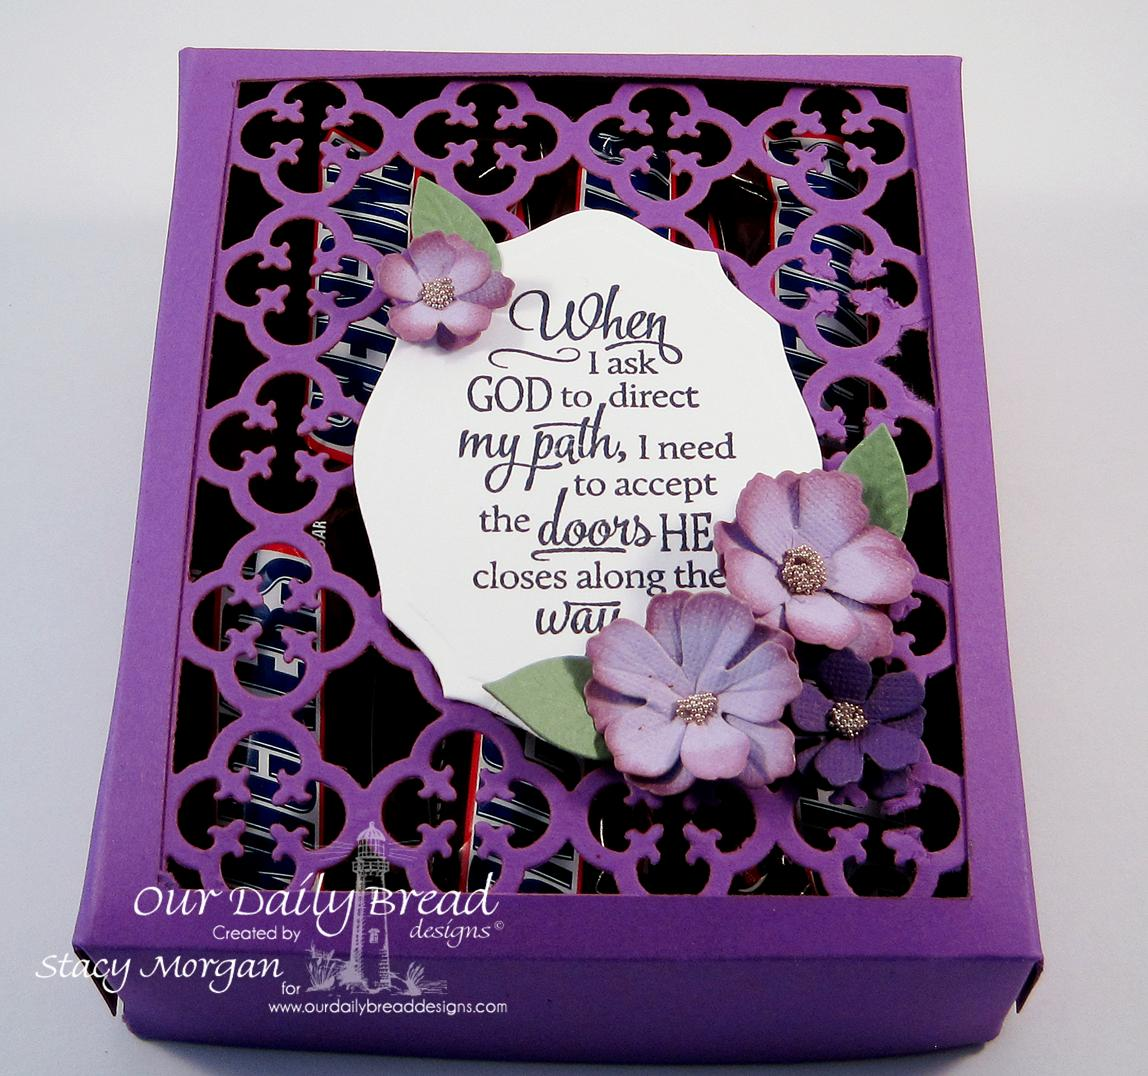 Stamps - Our Daily Bread Designs Sentiment Collection 3, ODBD Custom Quatrefoil Pattern Die, ODBD Elegant Oval Die